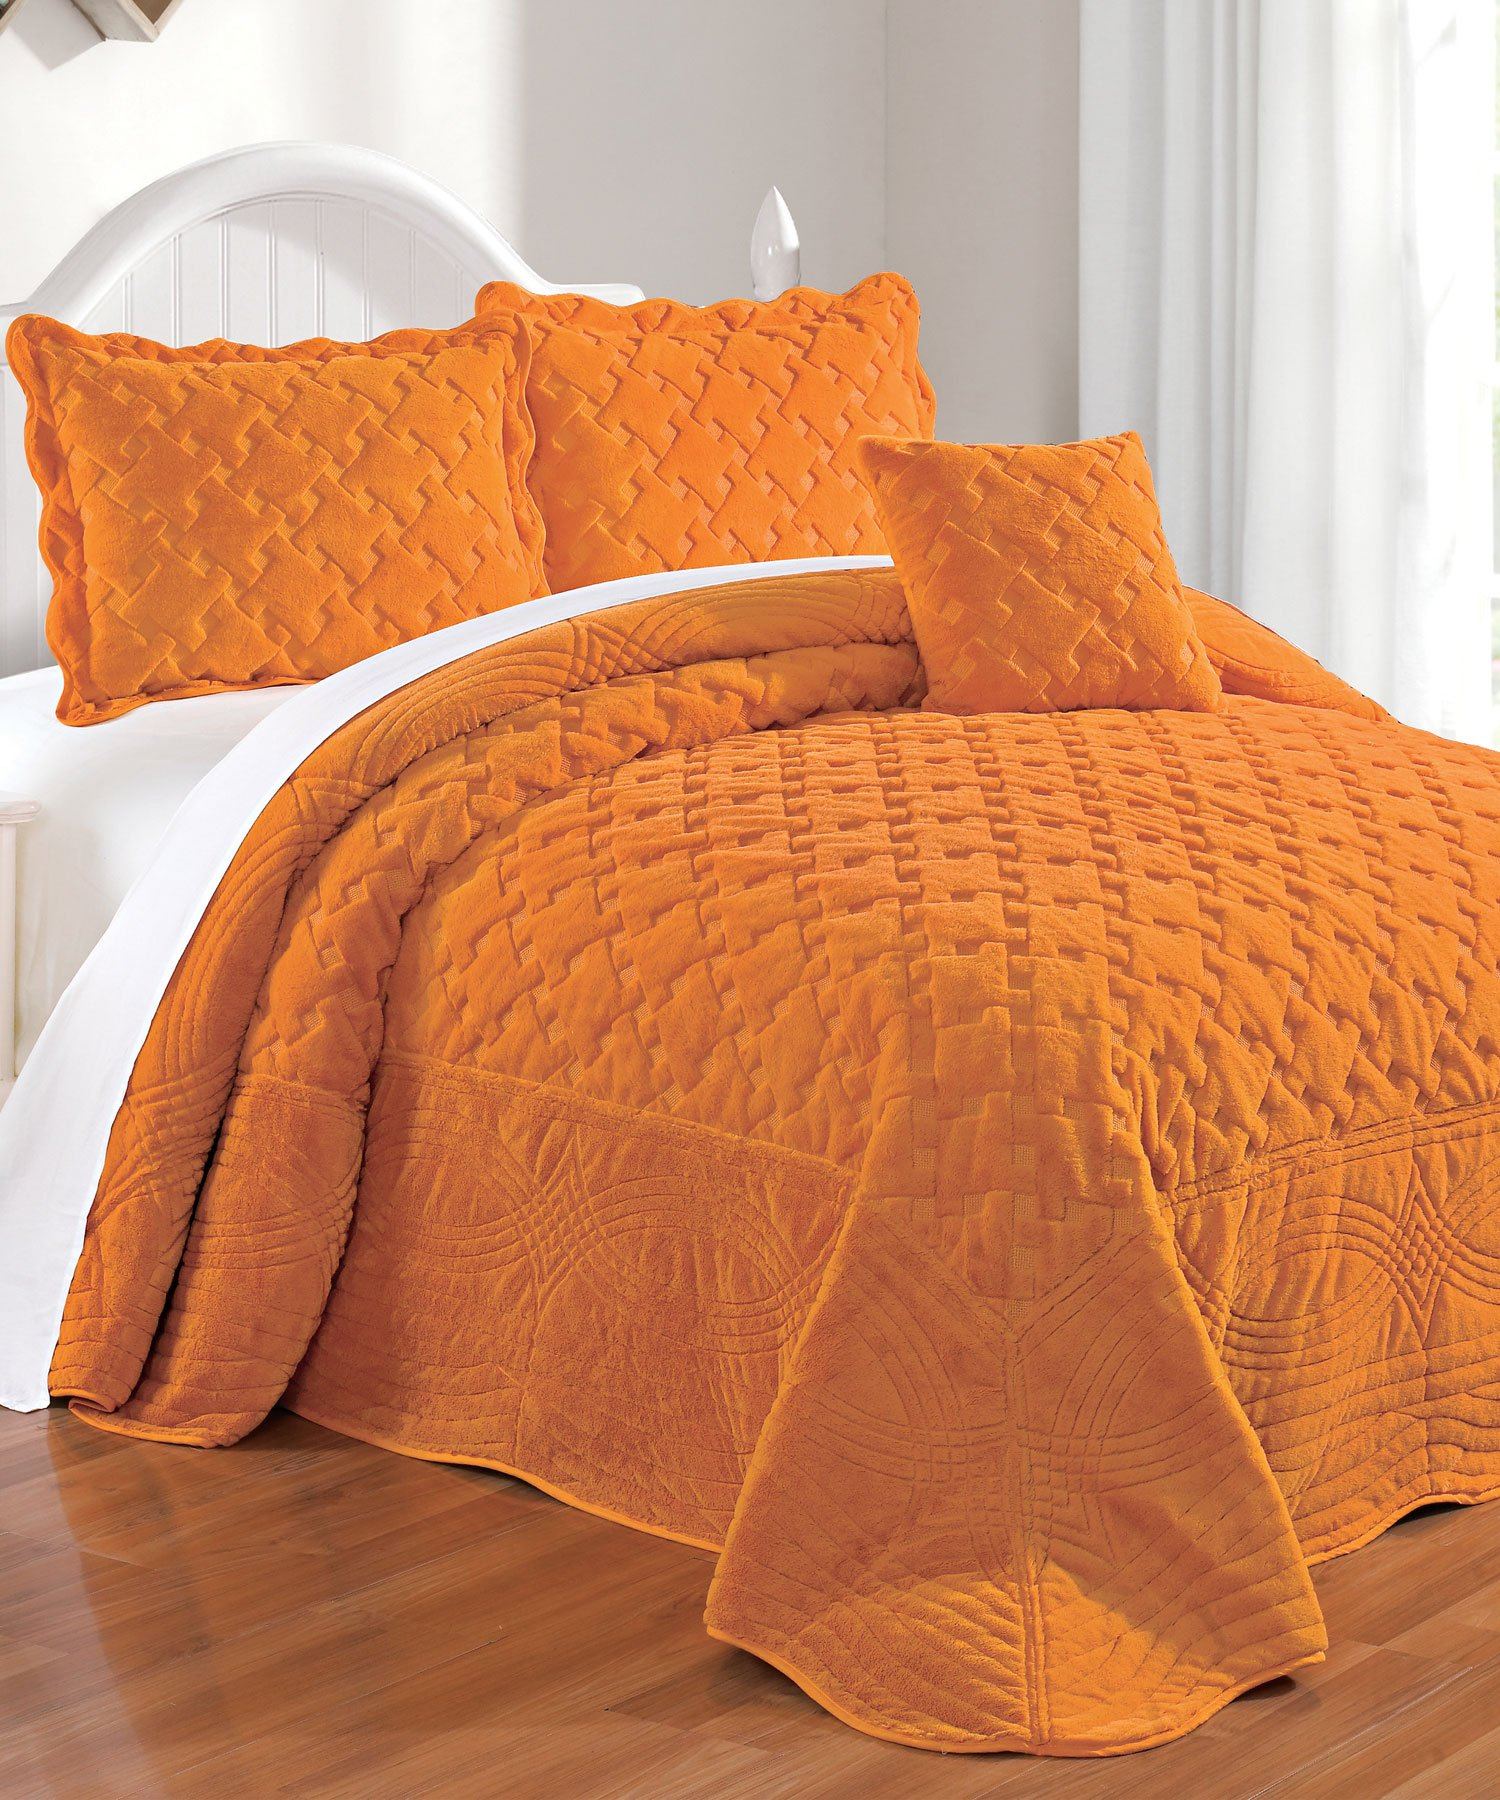 Serenta Faux Fur Quilted Tatami 4 Piece Bedspread Set, King, Apricot by Home Soft Things